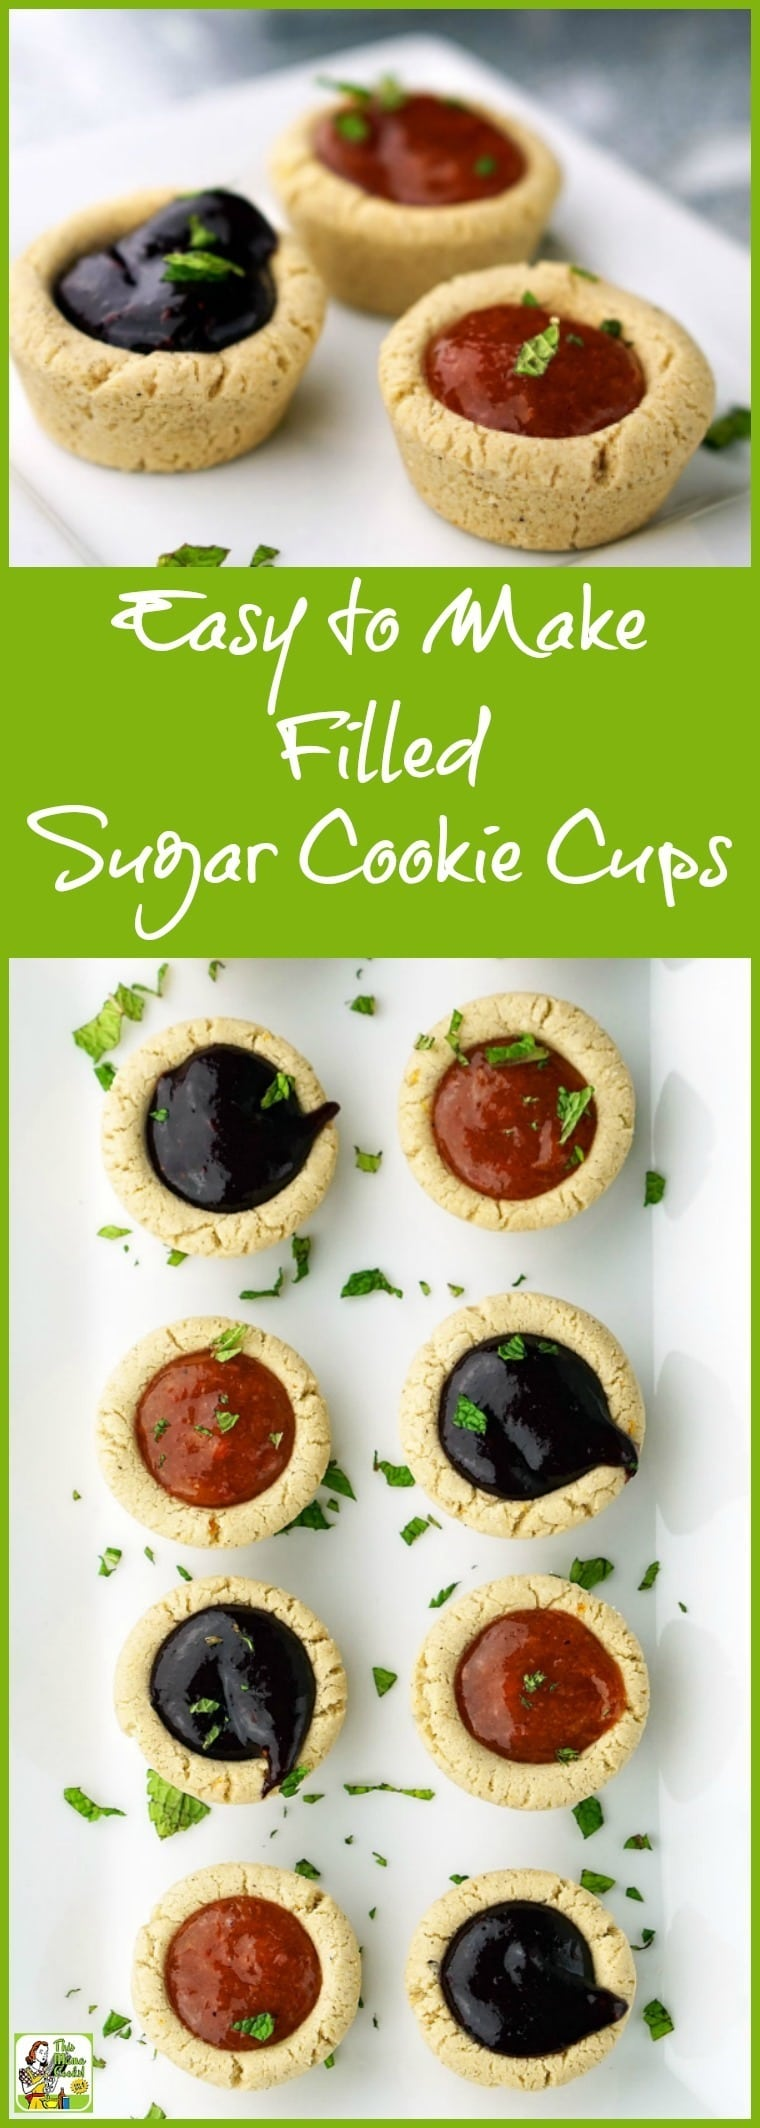 Fruit filled sugar cookie recipes